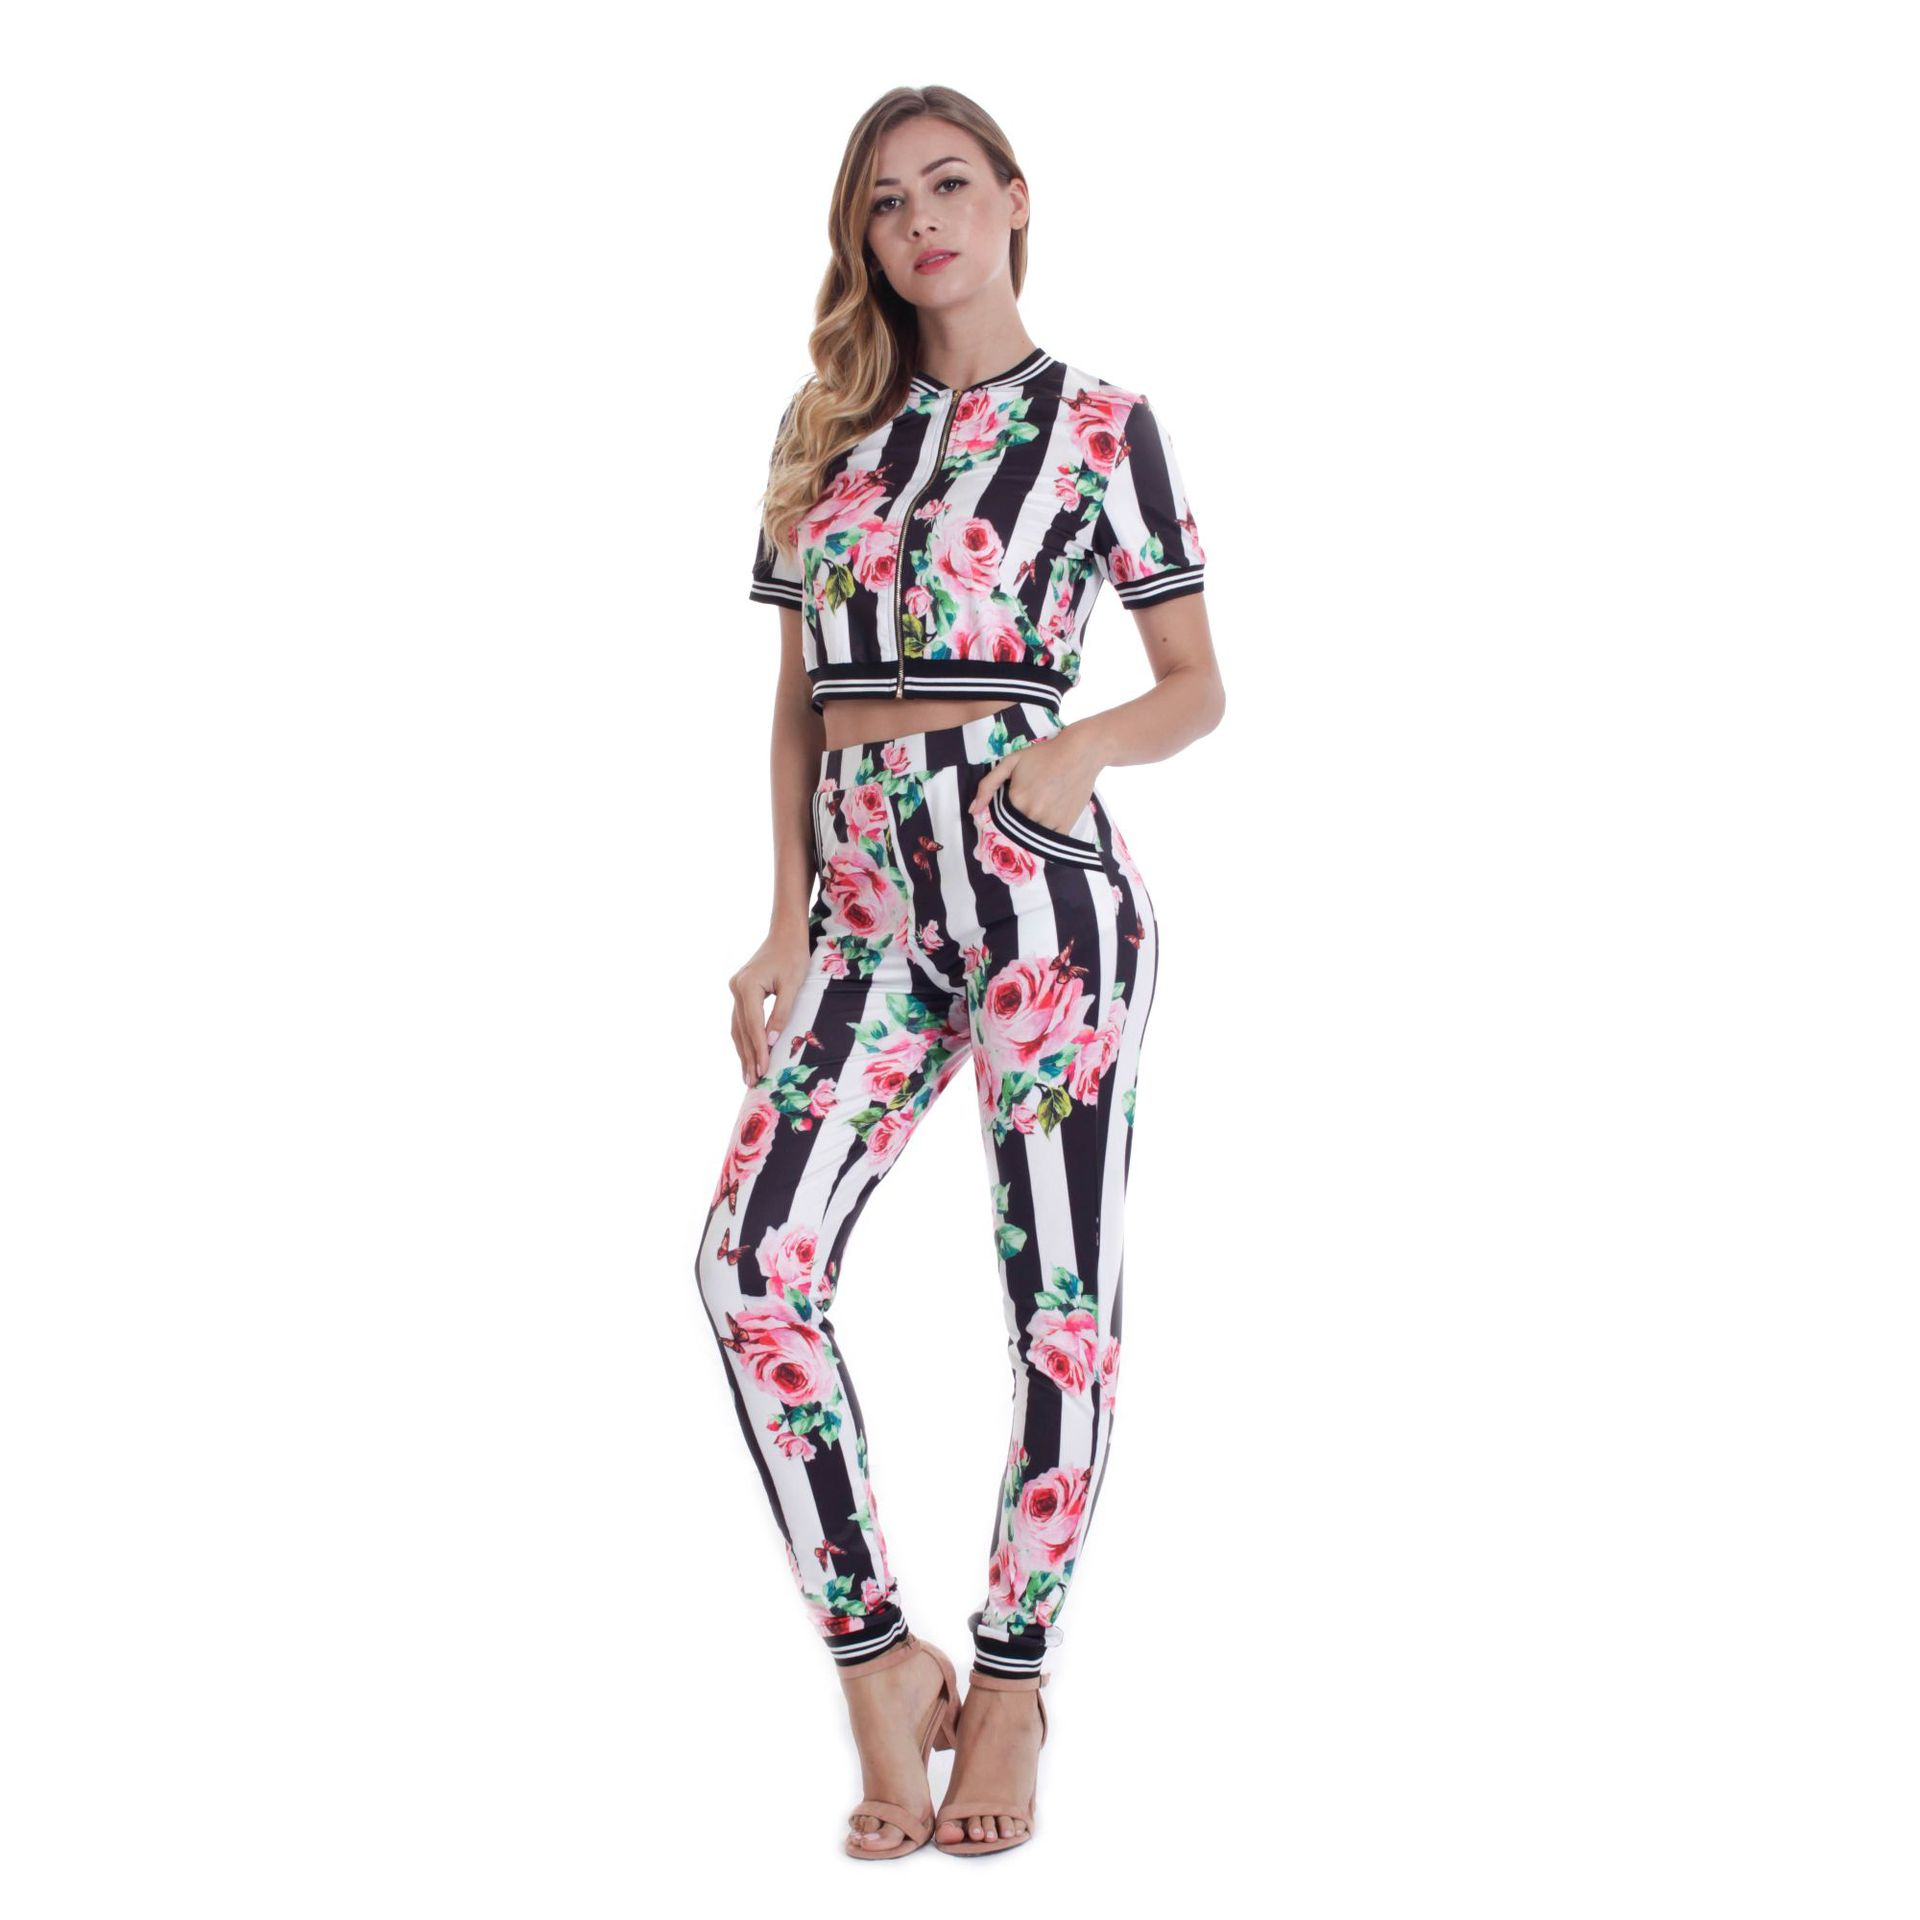 Summer And Autumn New Style Casual Slim Fit Printed Sports Clothing Set Bohemian Zipper Short Sleeve Pants Set